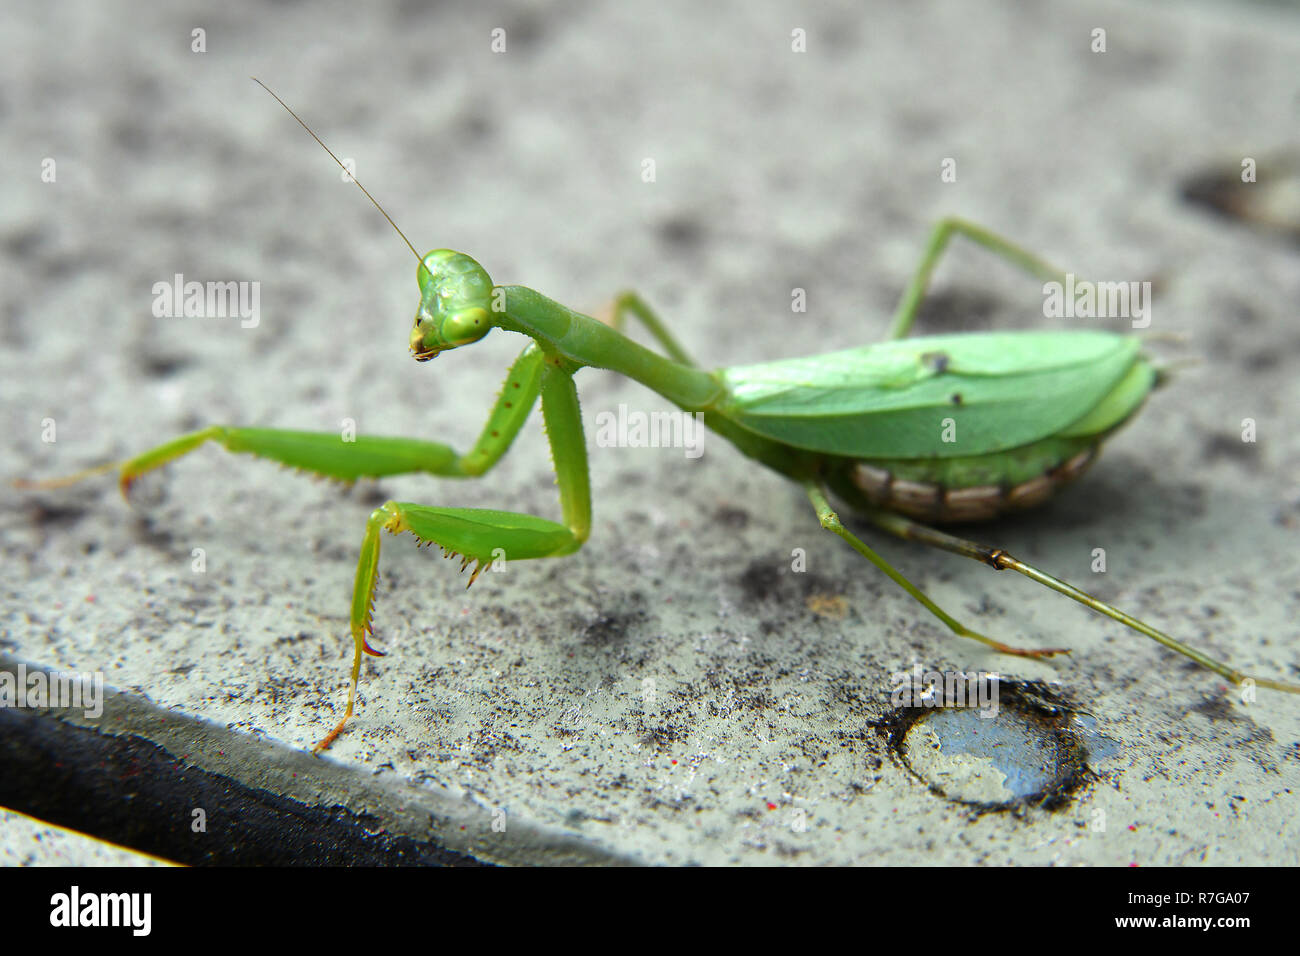 Pregnant Praying Mantis High Resolution Stock Photography And